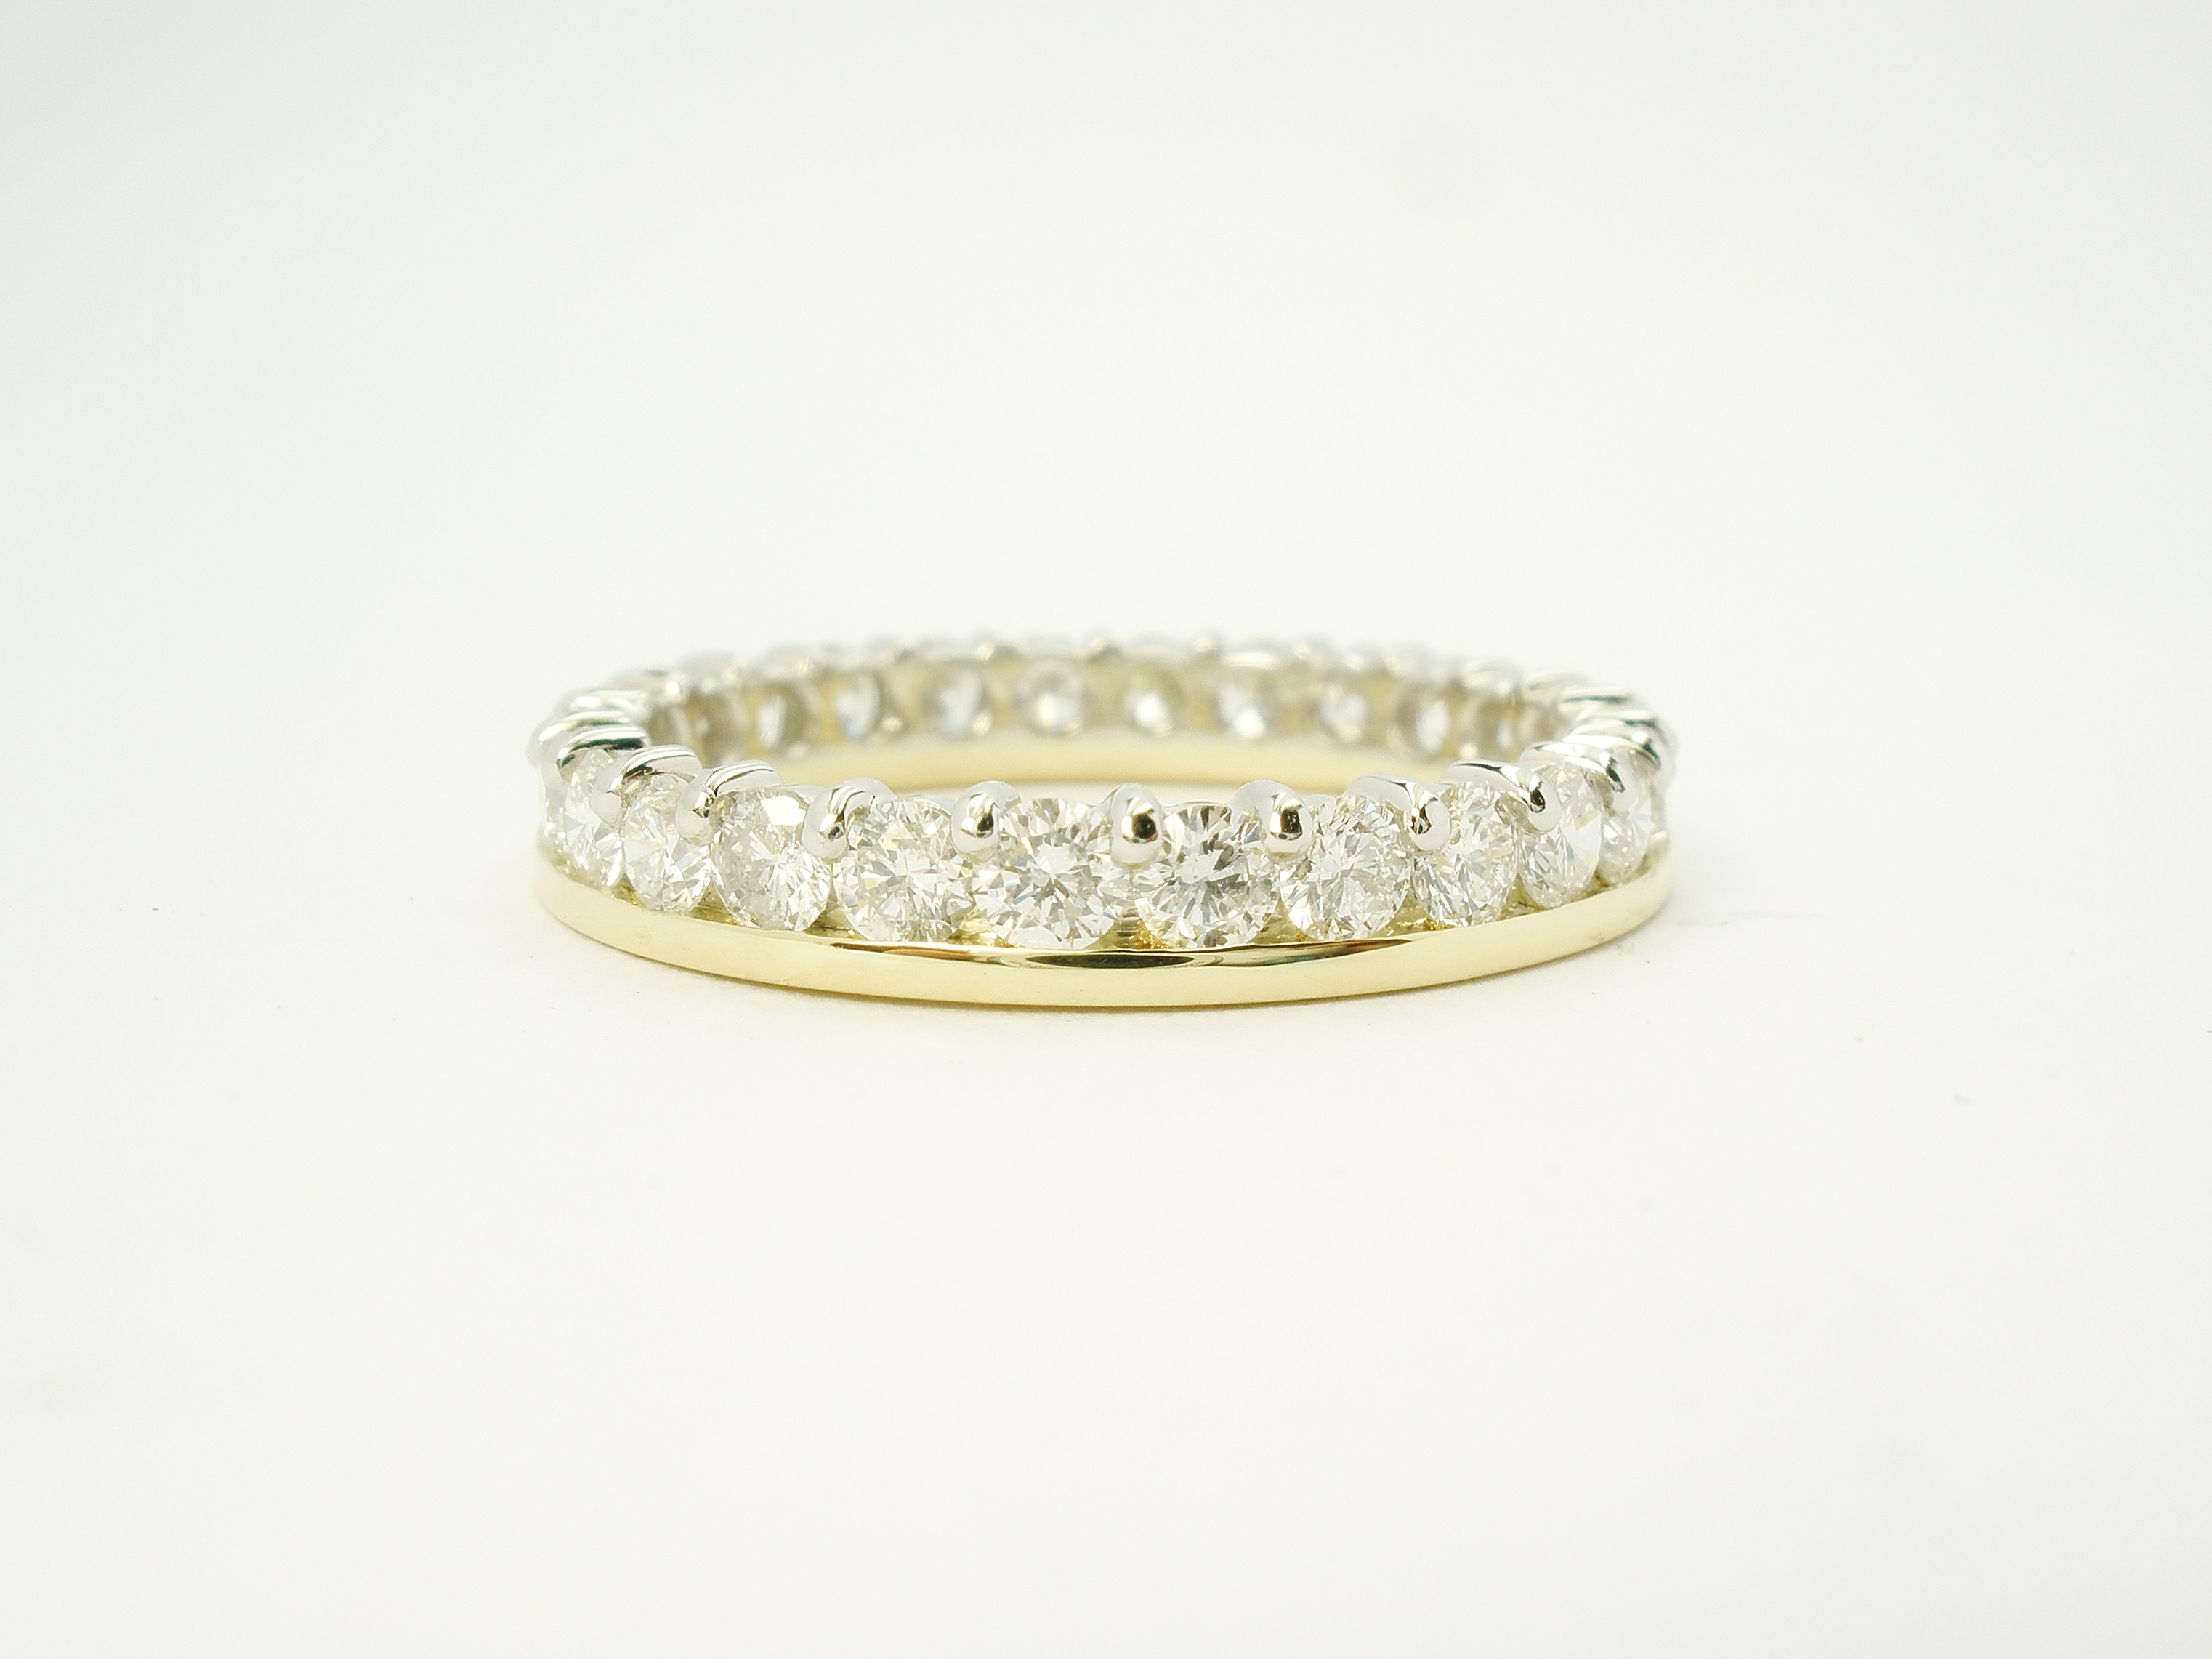 18ct. yellow gold & platinum part channel set diamond full hoop eternity ring.